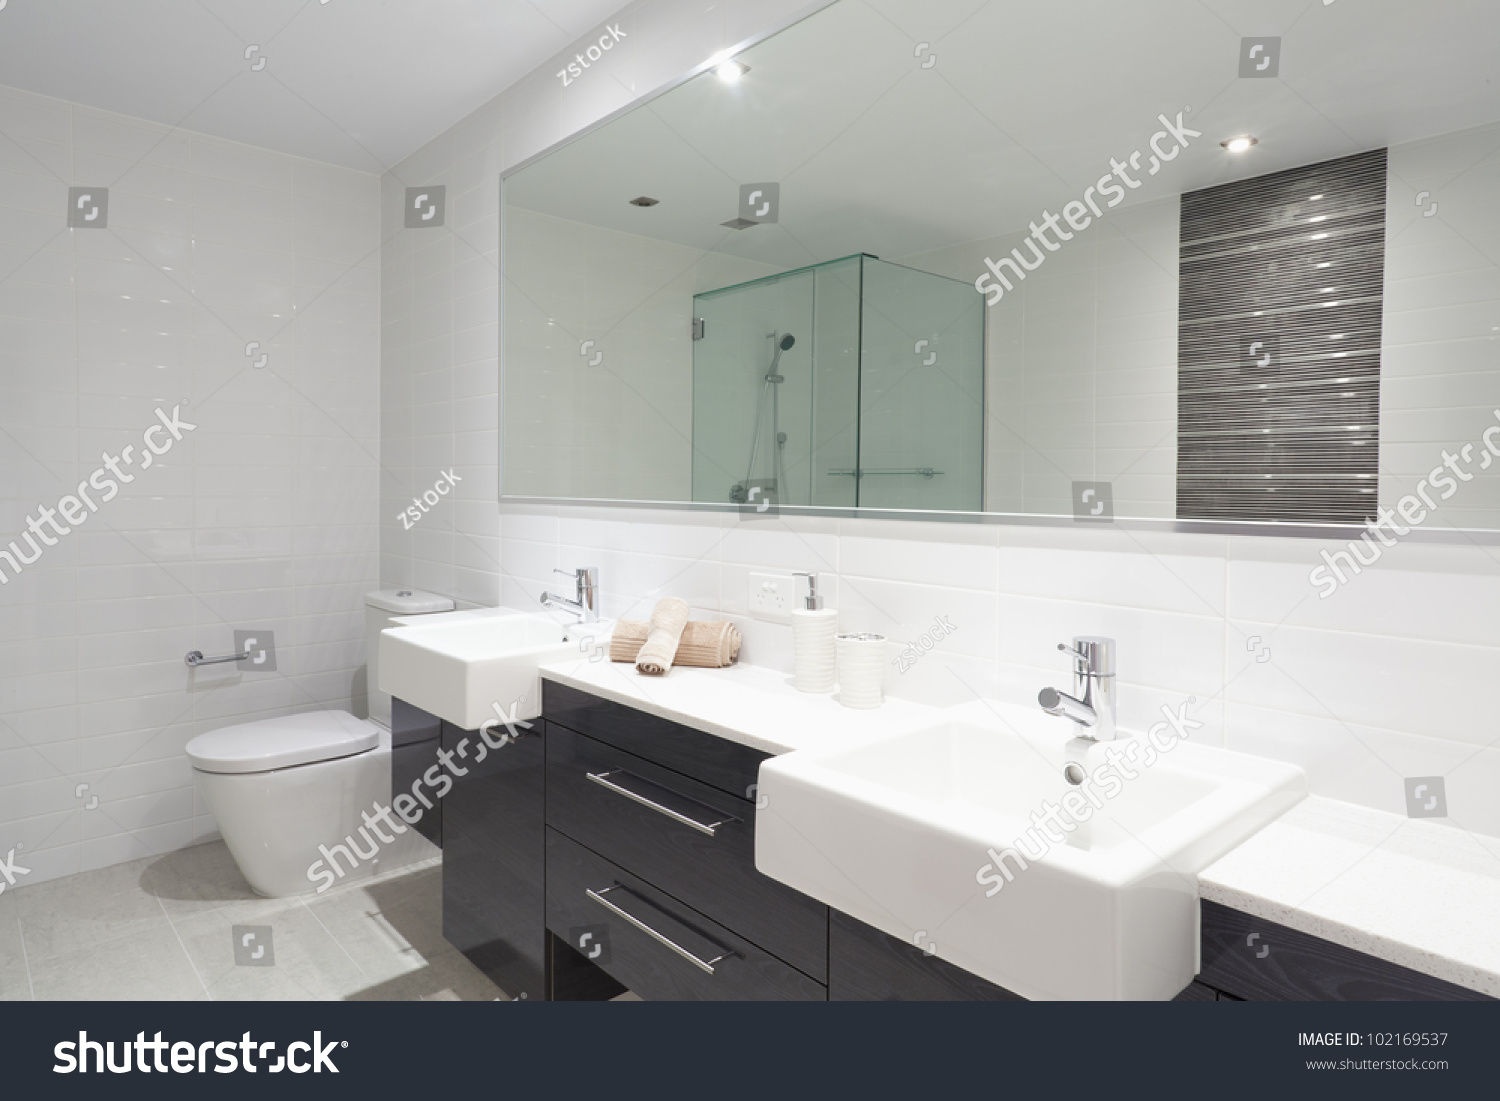 Twin bathroom sinks - Modern Twin Bathroom With Sinks Toilet And Shower